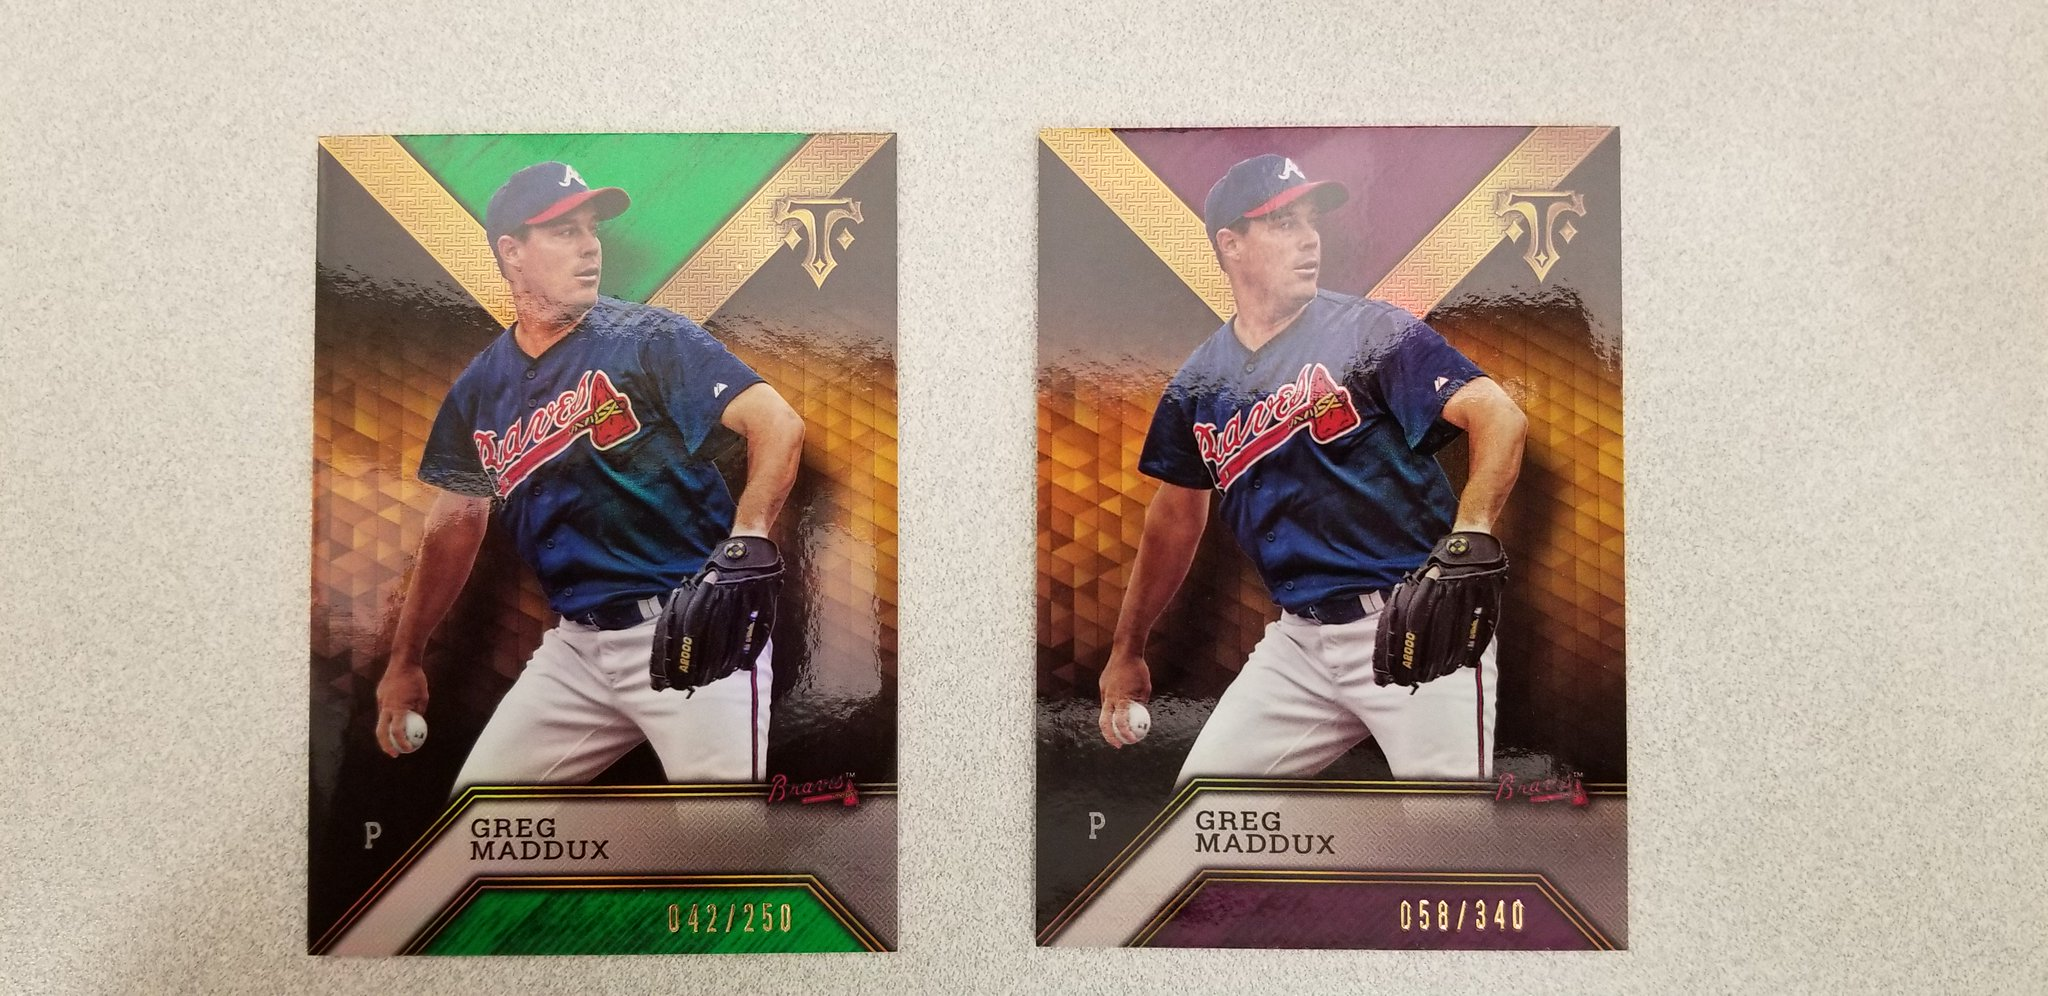 We're giving away a pair of limited edition @gregmaddux cards for his birthday. RT to win. #MLBCards https://t.co/ddRNl84zW9